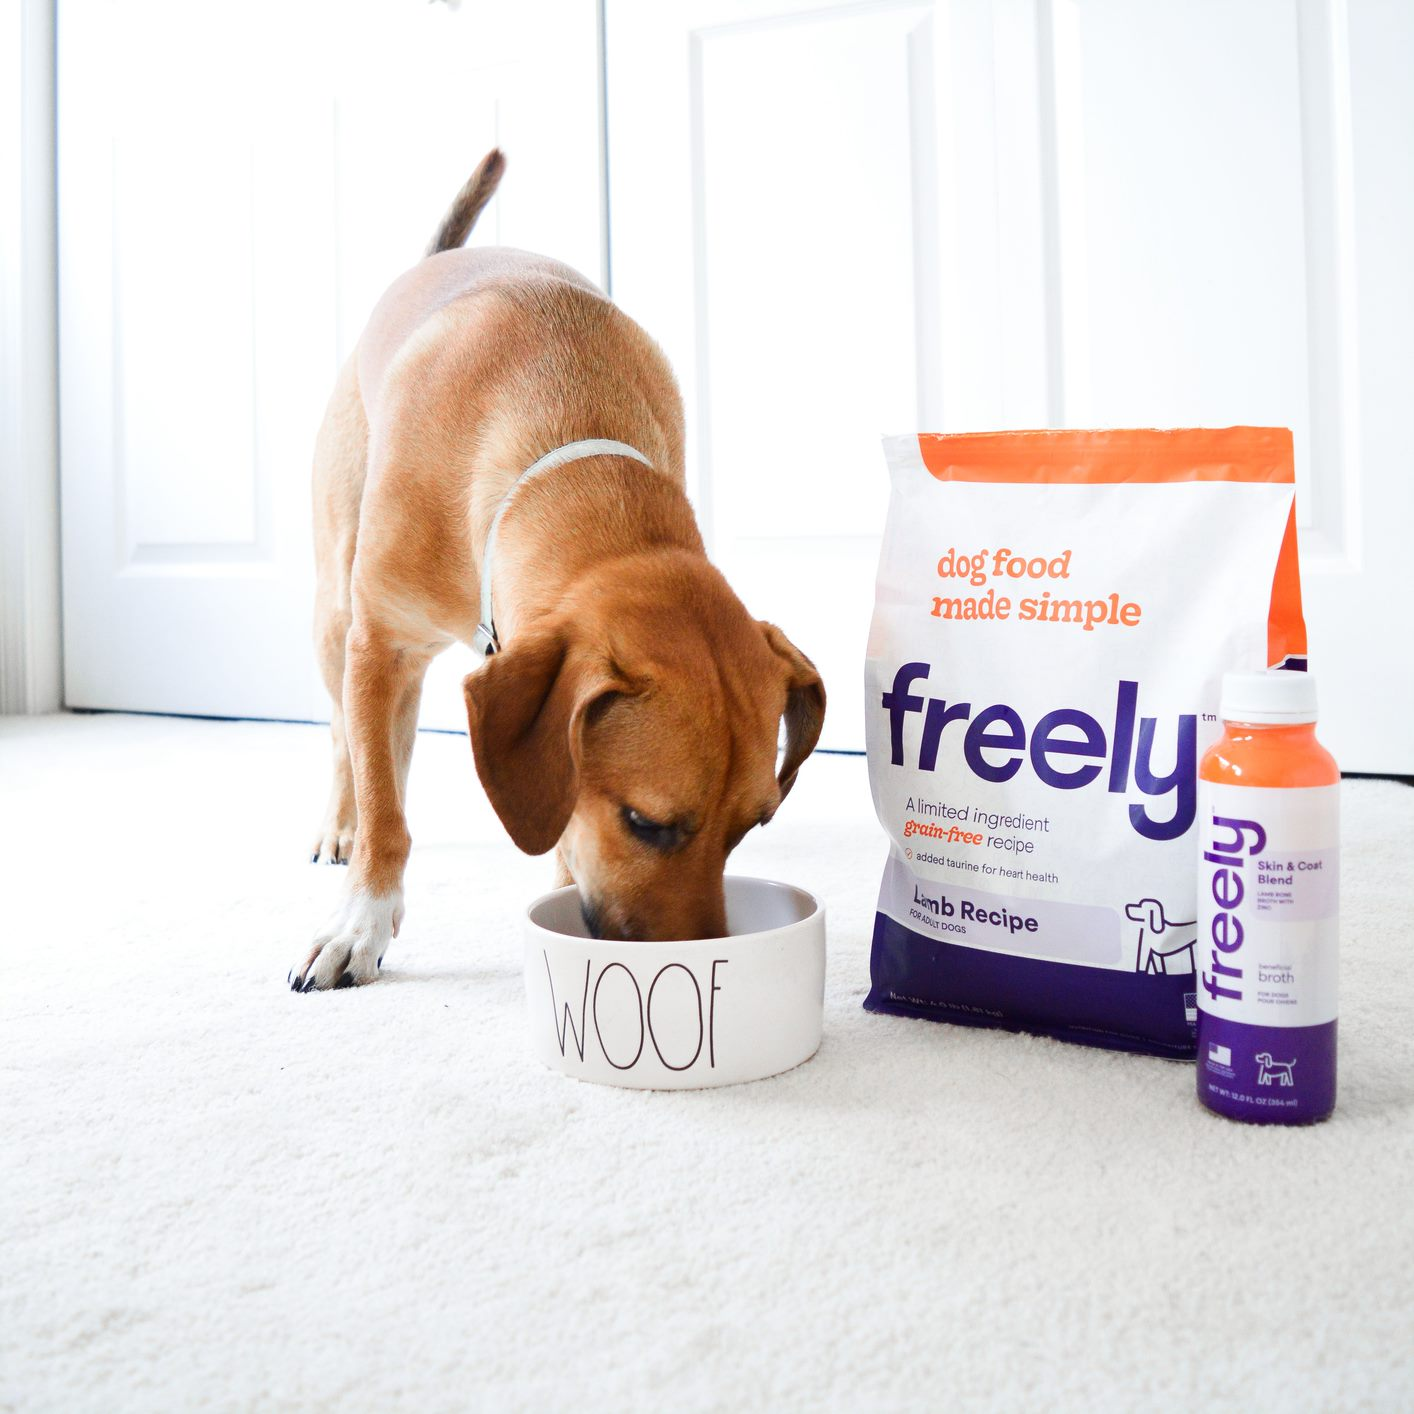 "Why Freely?<br><br>  <span style=""font-size: 22px; font-weight: 500;"">Freely is a team of pet-loving, pet food and nutrition experts committed to making pet food simple – simply good for your pet and simply easy to understand. Build a perfect bowl for your dog or cat with any combination of Freely recipes:<br><br><ul><li>Delicious Kibble</li><br><li>Mouth-Watering Wet Food</li><br><li>Beneficial Bone Broths</li></ul><br>   <em>""High quality food and thoughtfully balanced nutrition are important to the overall health of every pet.""</em> - Freely Veterinarian Dr. Sara Gilbert</span>"